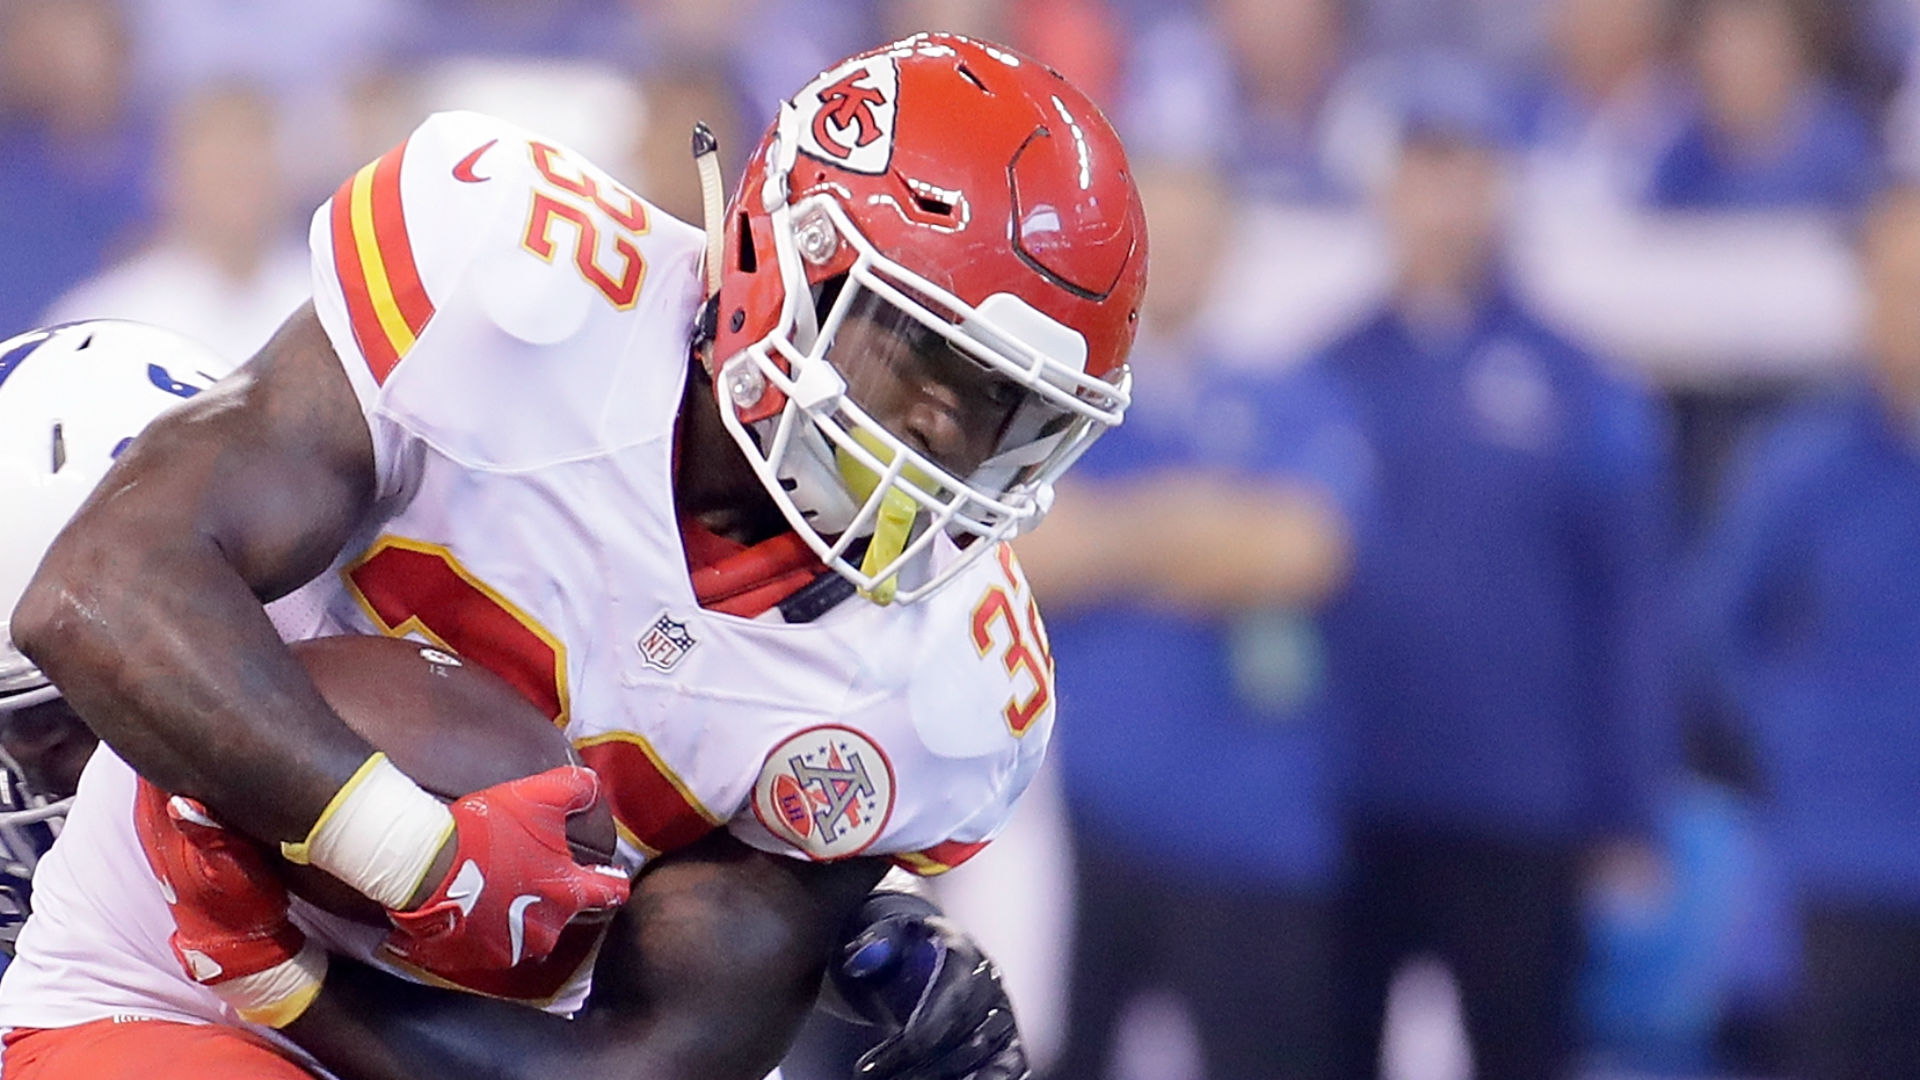 Chiefs expect Spencer Ware to miss the season with knee injury